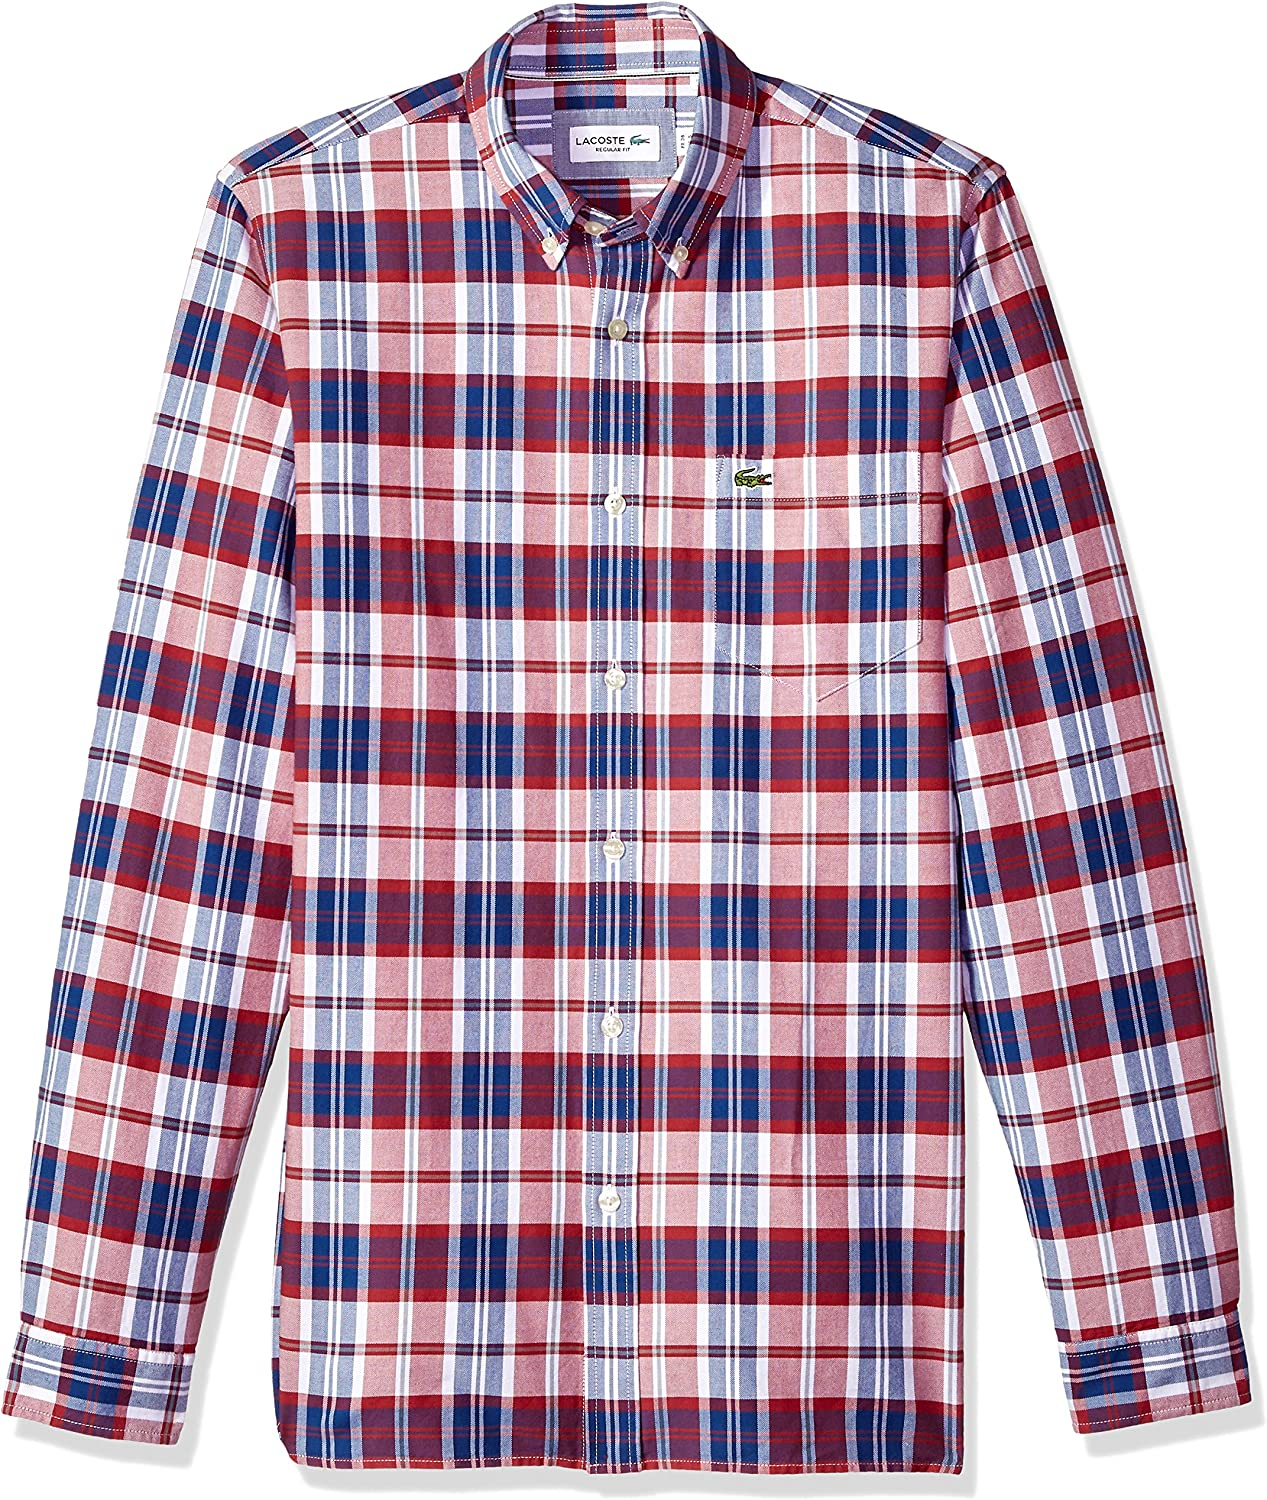 Lacoste Long Sleeve Oxford Checked Button Down Collar Reg Fit, CH5811